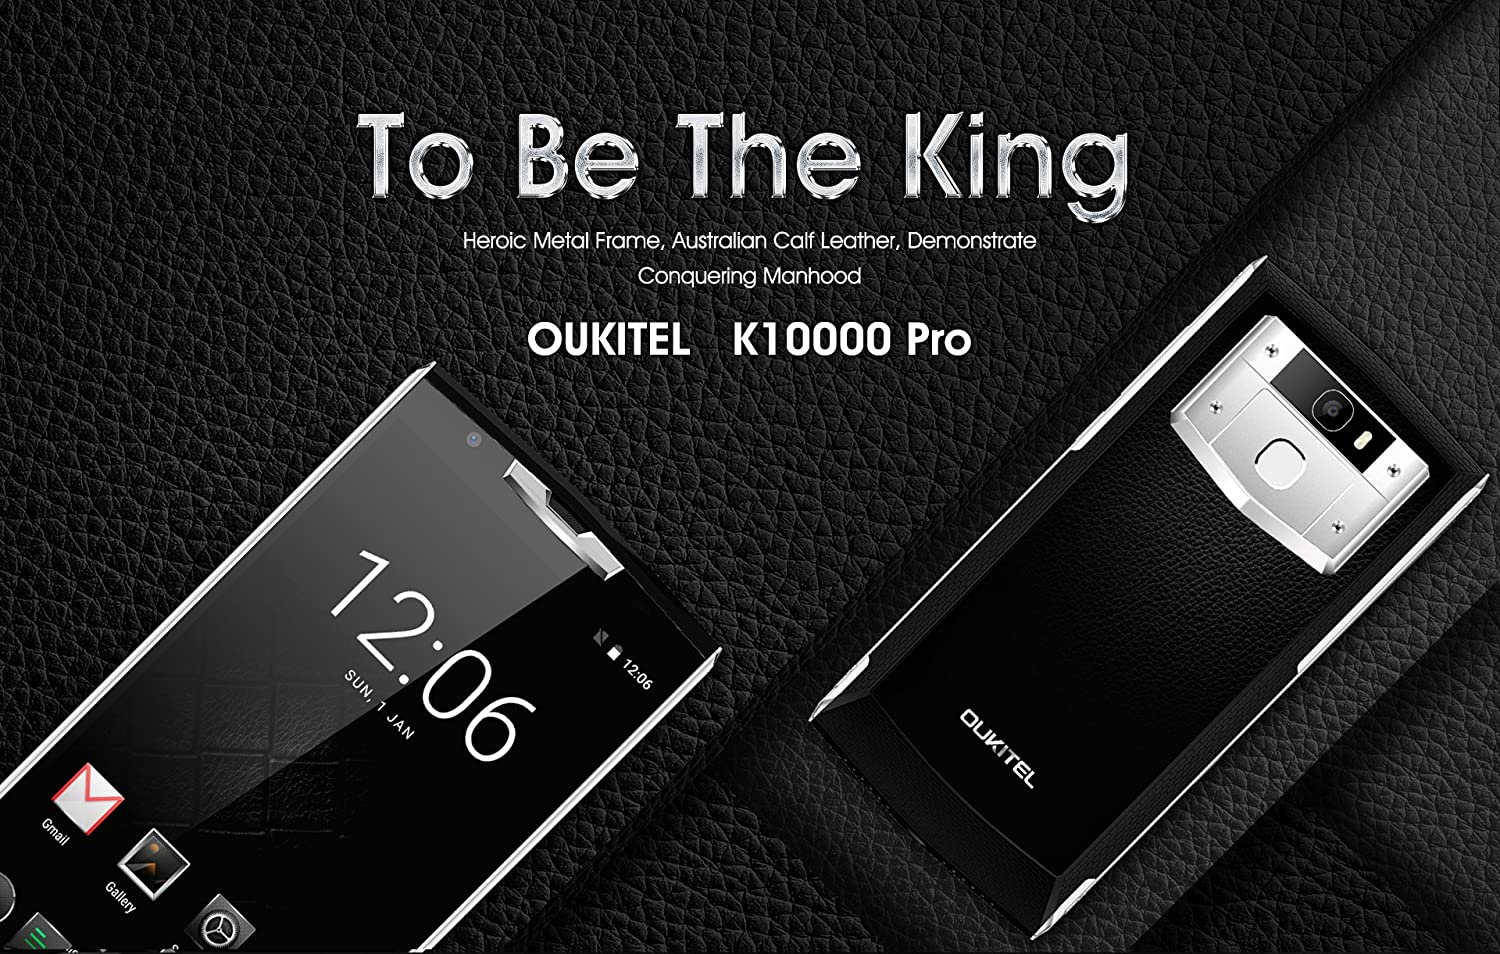 Mobile Phone Batteries Just New High Quality 10000mah Battery For Oukitel K10000pro K10000 Pro Mobile Phone Factory Direct Selling Price Cellphones & Telecommunications